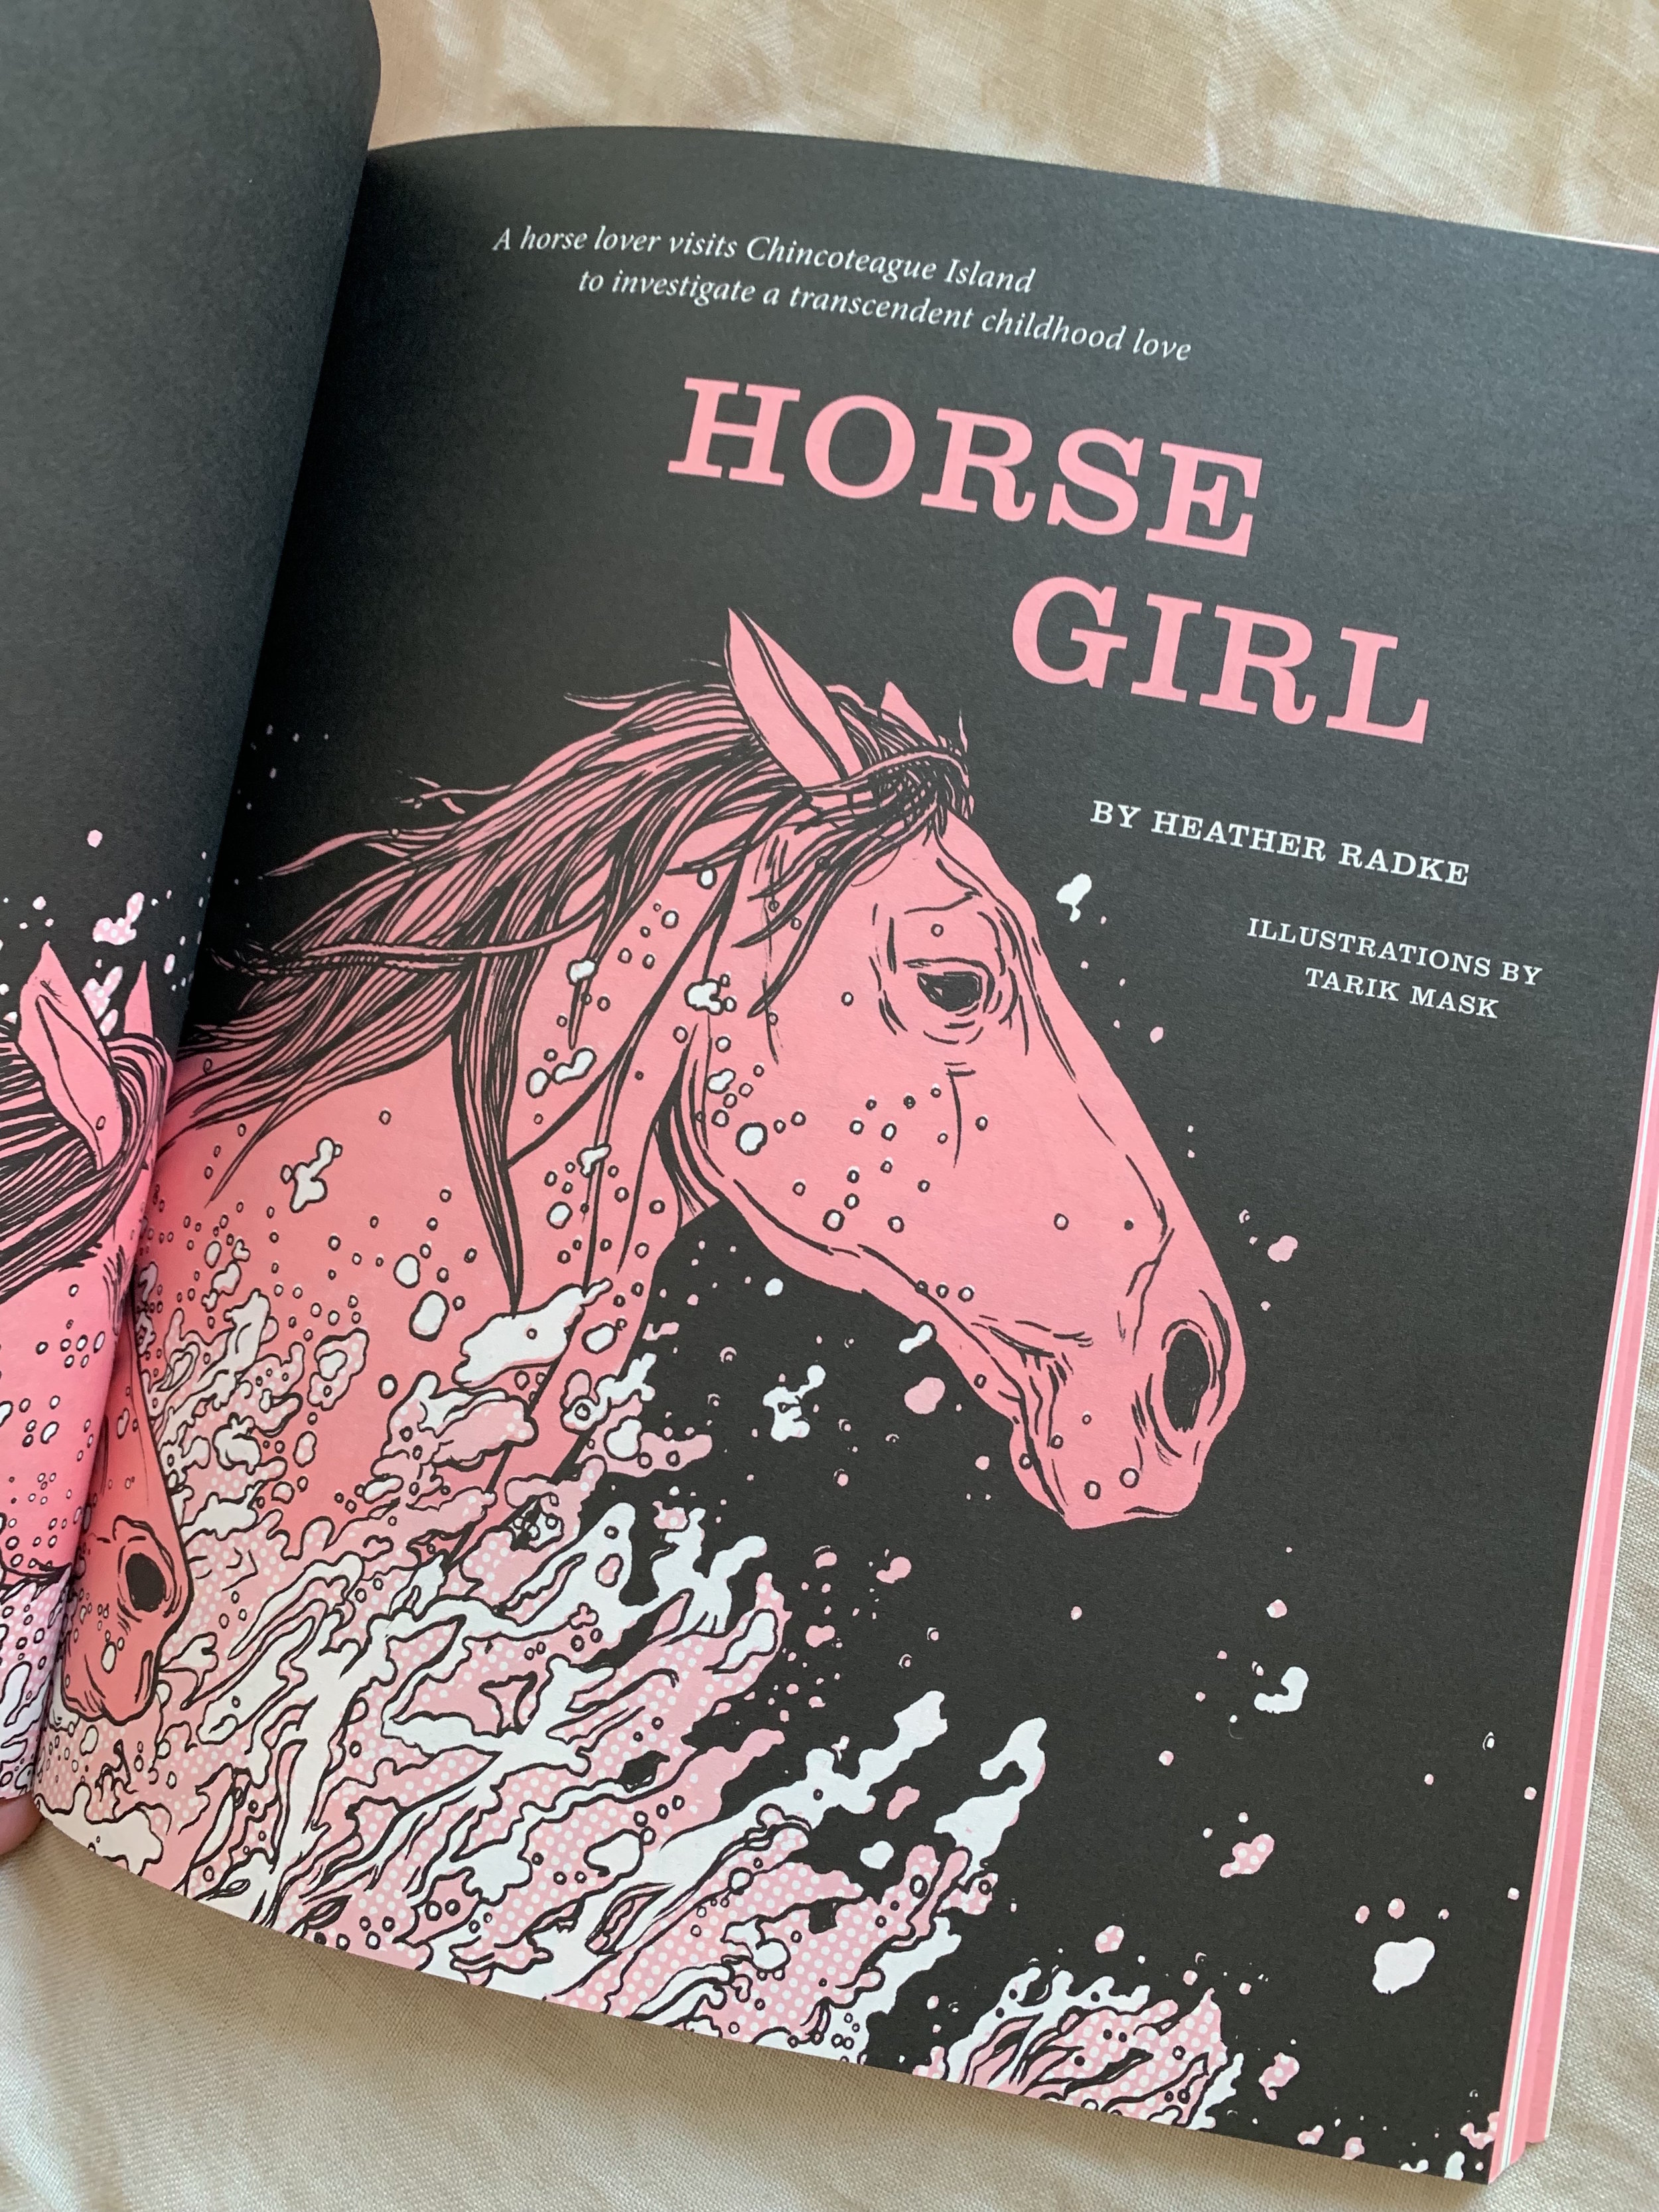 Horse Girl  The Believer, Feb/March 2019  On Misty of Chincoteague, Saltwater Cowboys, and the transcendent power of loving ponies